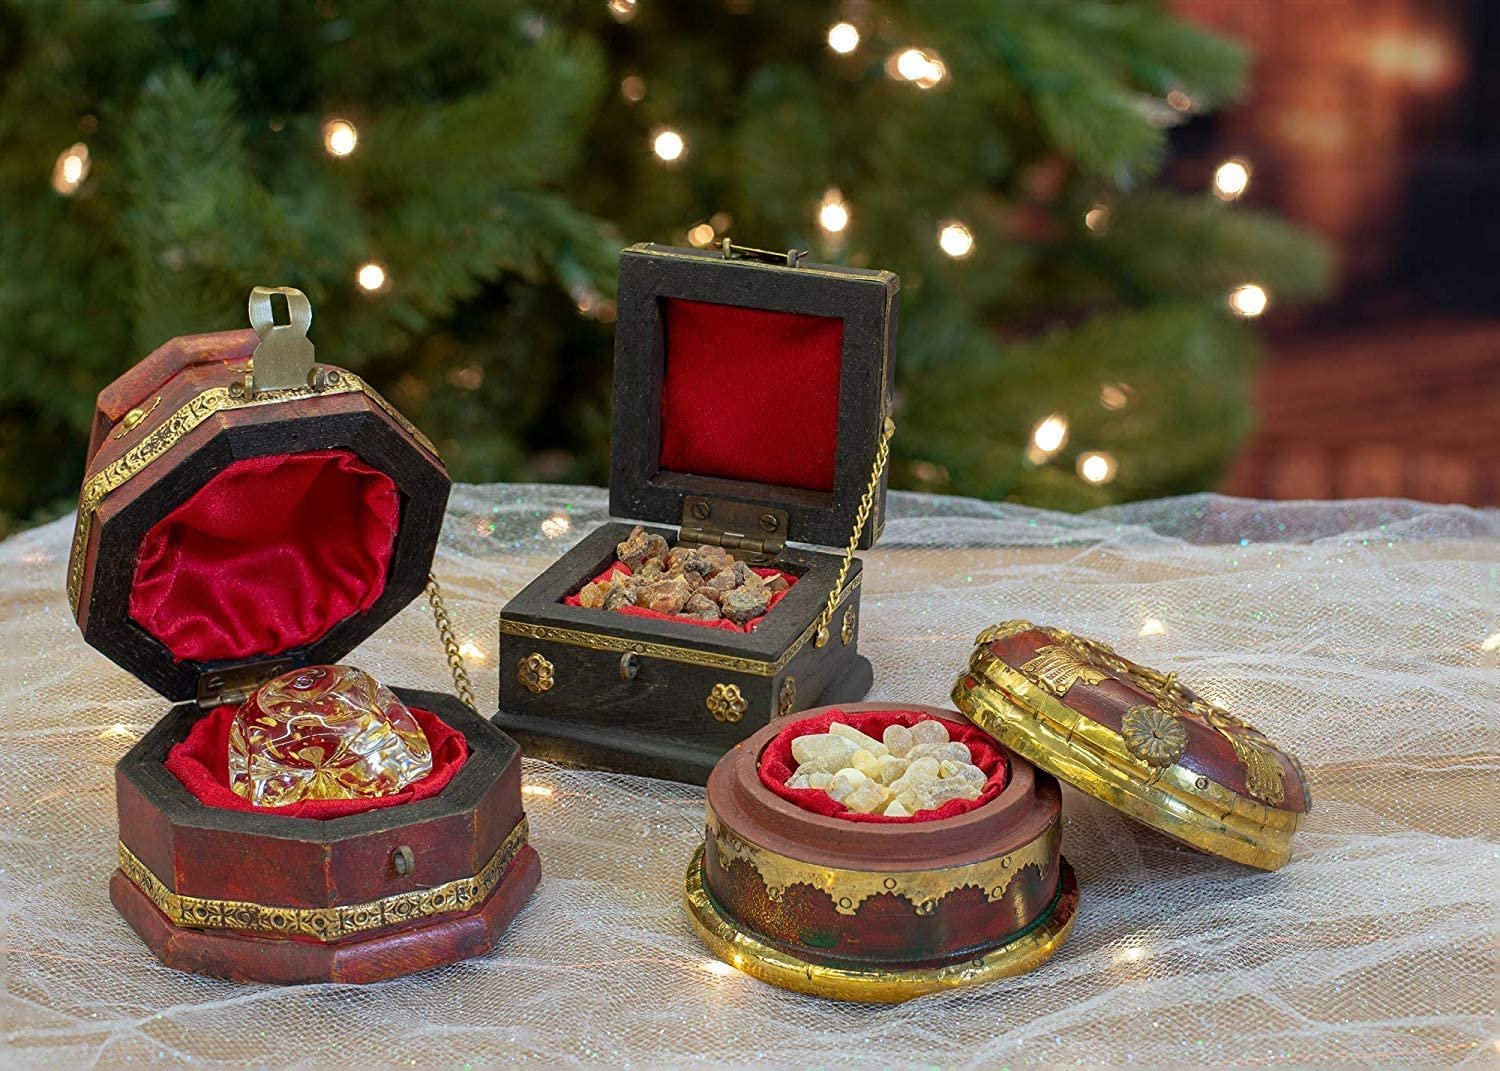 THREE KINGS GIFTS THE ORIGINAL GIFTS OF CHRISTMAS 3 Box Set Deluxe Gold Frankincense & Myrrh